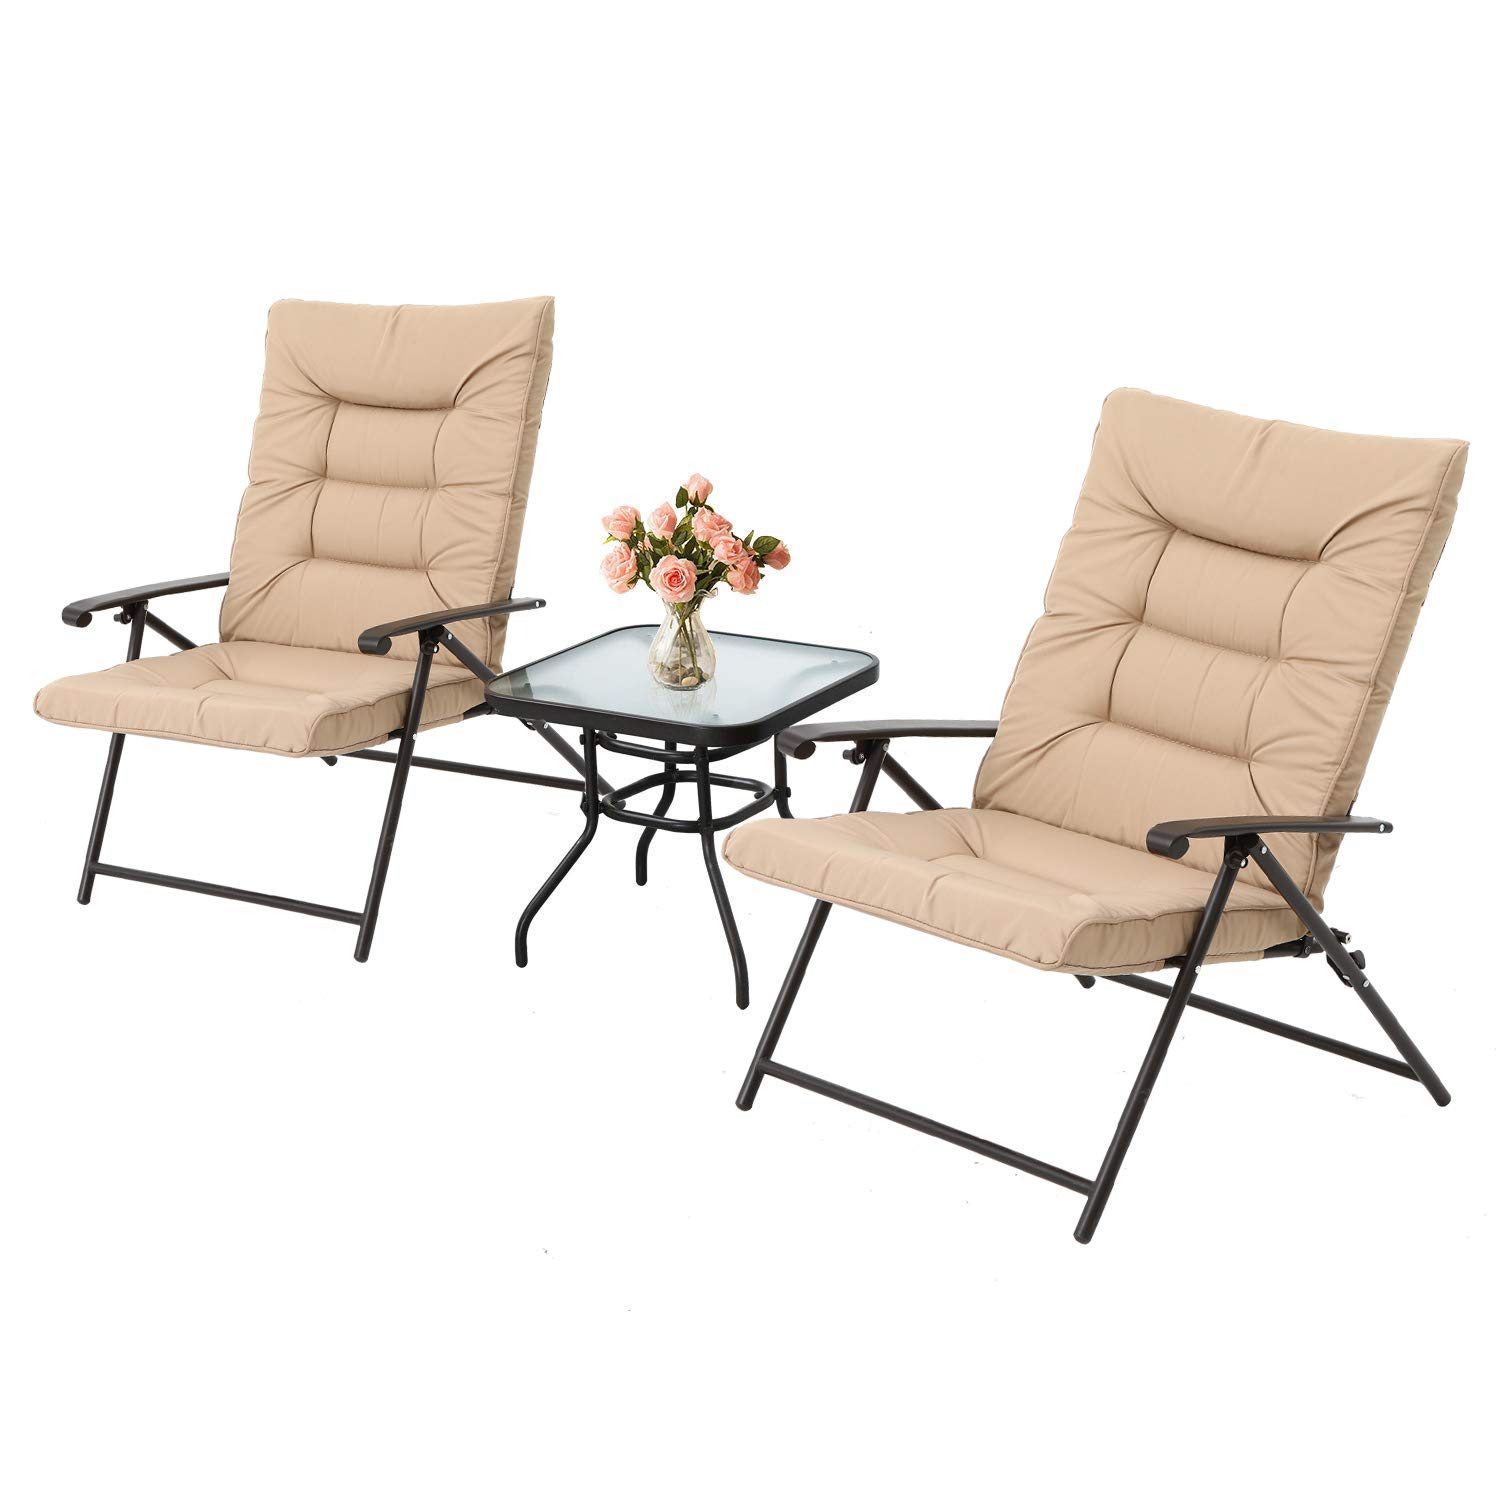 OUTROAD 3-Piece Patio Padded Folding Chair Set Outdoor Adjustable Reclining Furniture Metal Sling Chair w/Coffee Table, Beige